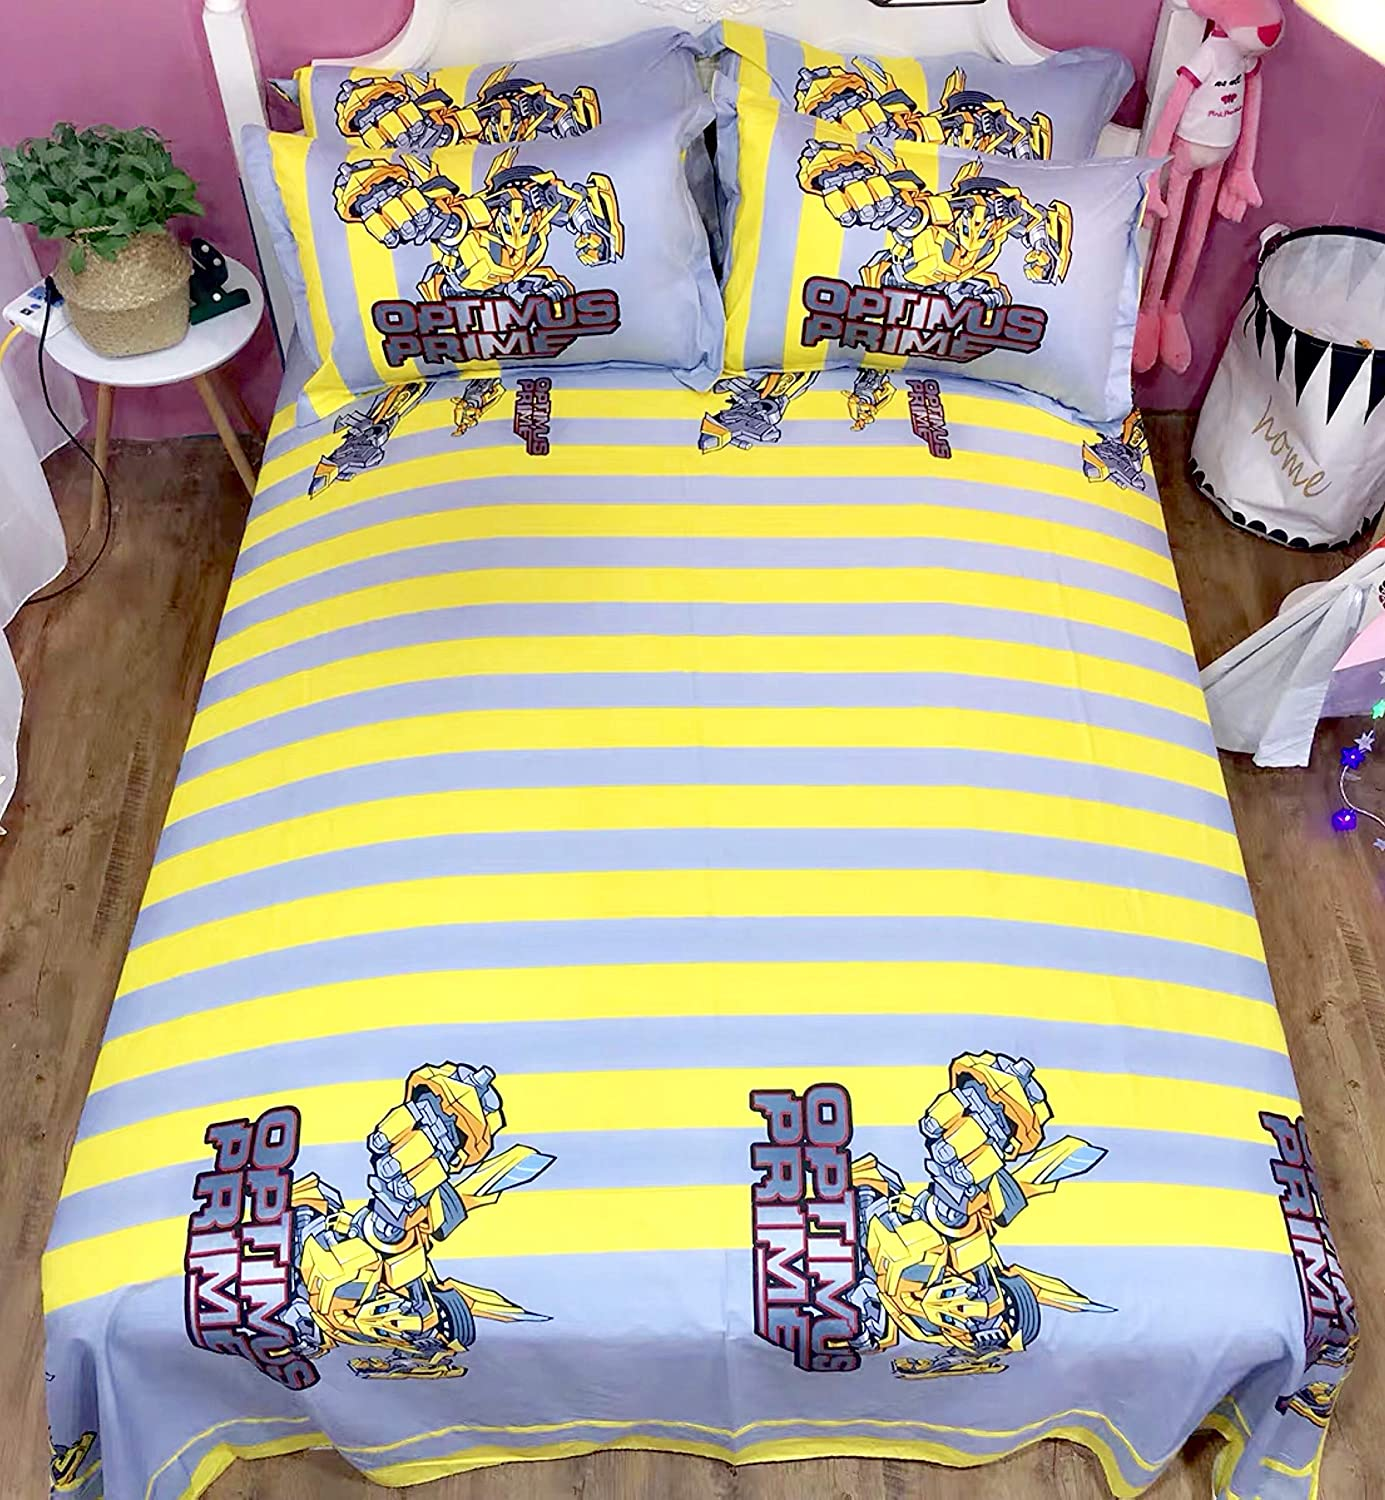 King Size Featuring Transformers Bumblebee Bedding Sheet Set Single Queen Twin Full Size【100/% Cotton】【Free Express Shipping】 Yellow Cool Cartoon Superhero Bed 3 and 4 Pieces